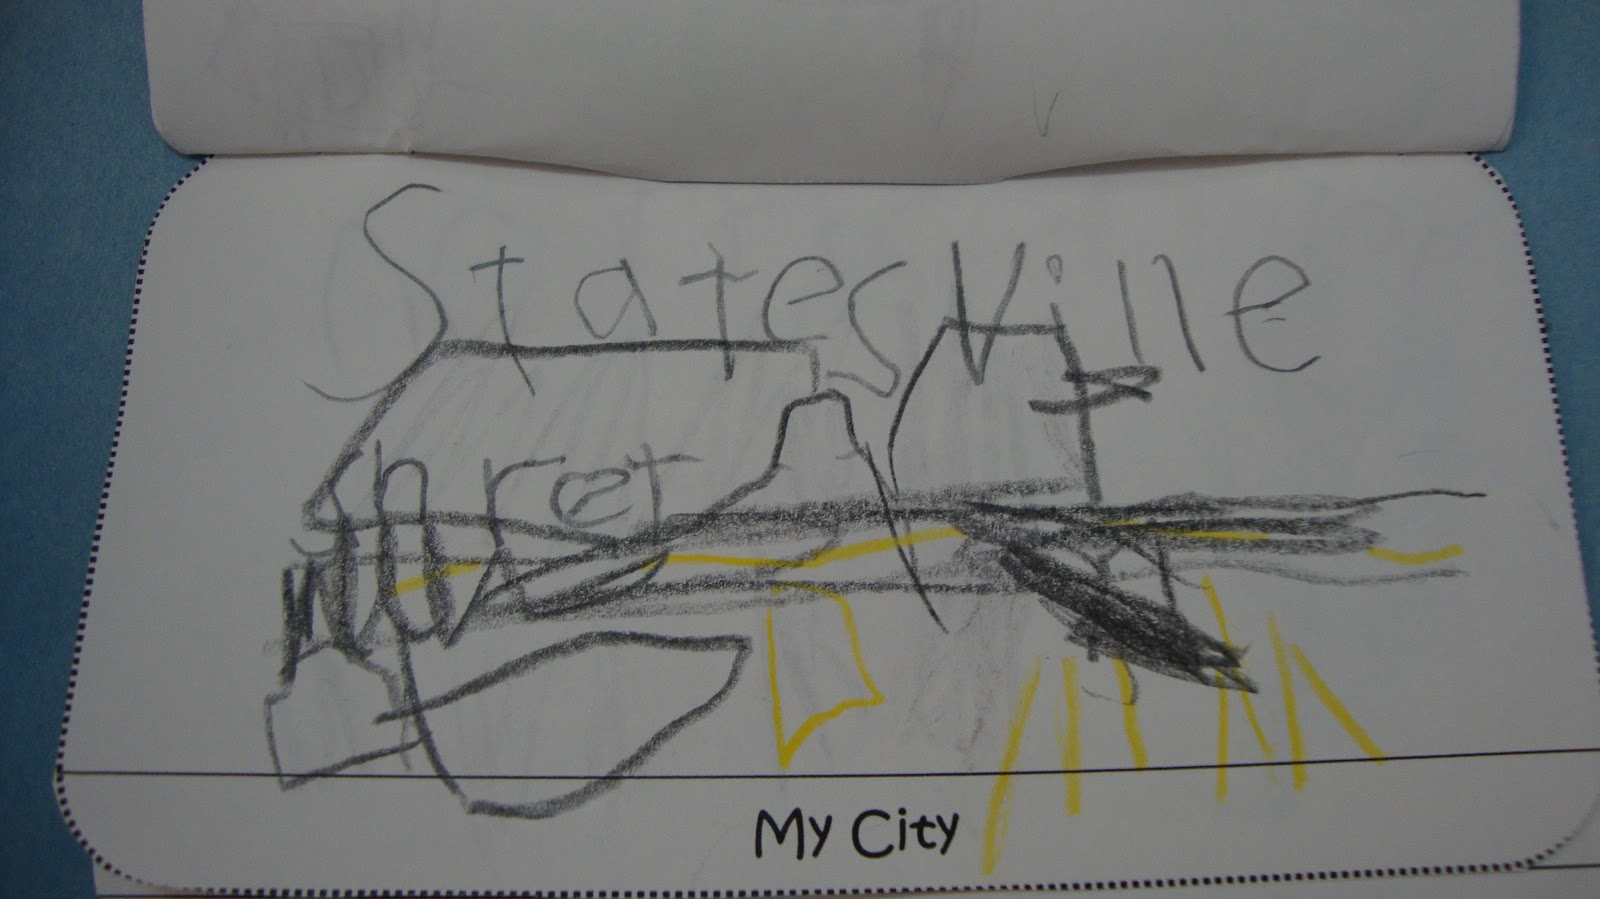 the children were given the option to draw a street map or to draw three places that they enjoy visitng in our city statesville